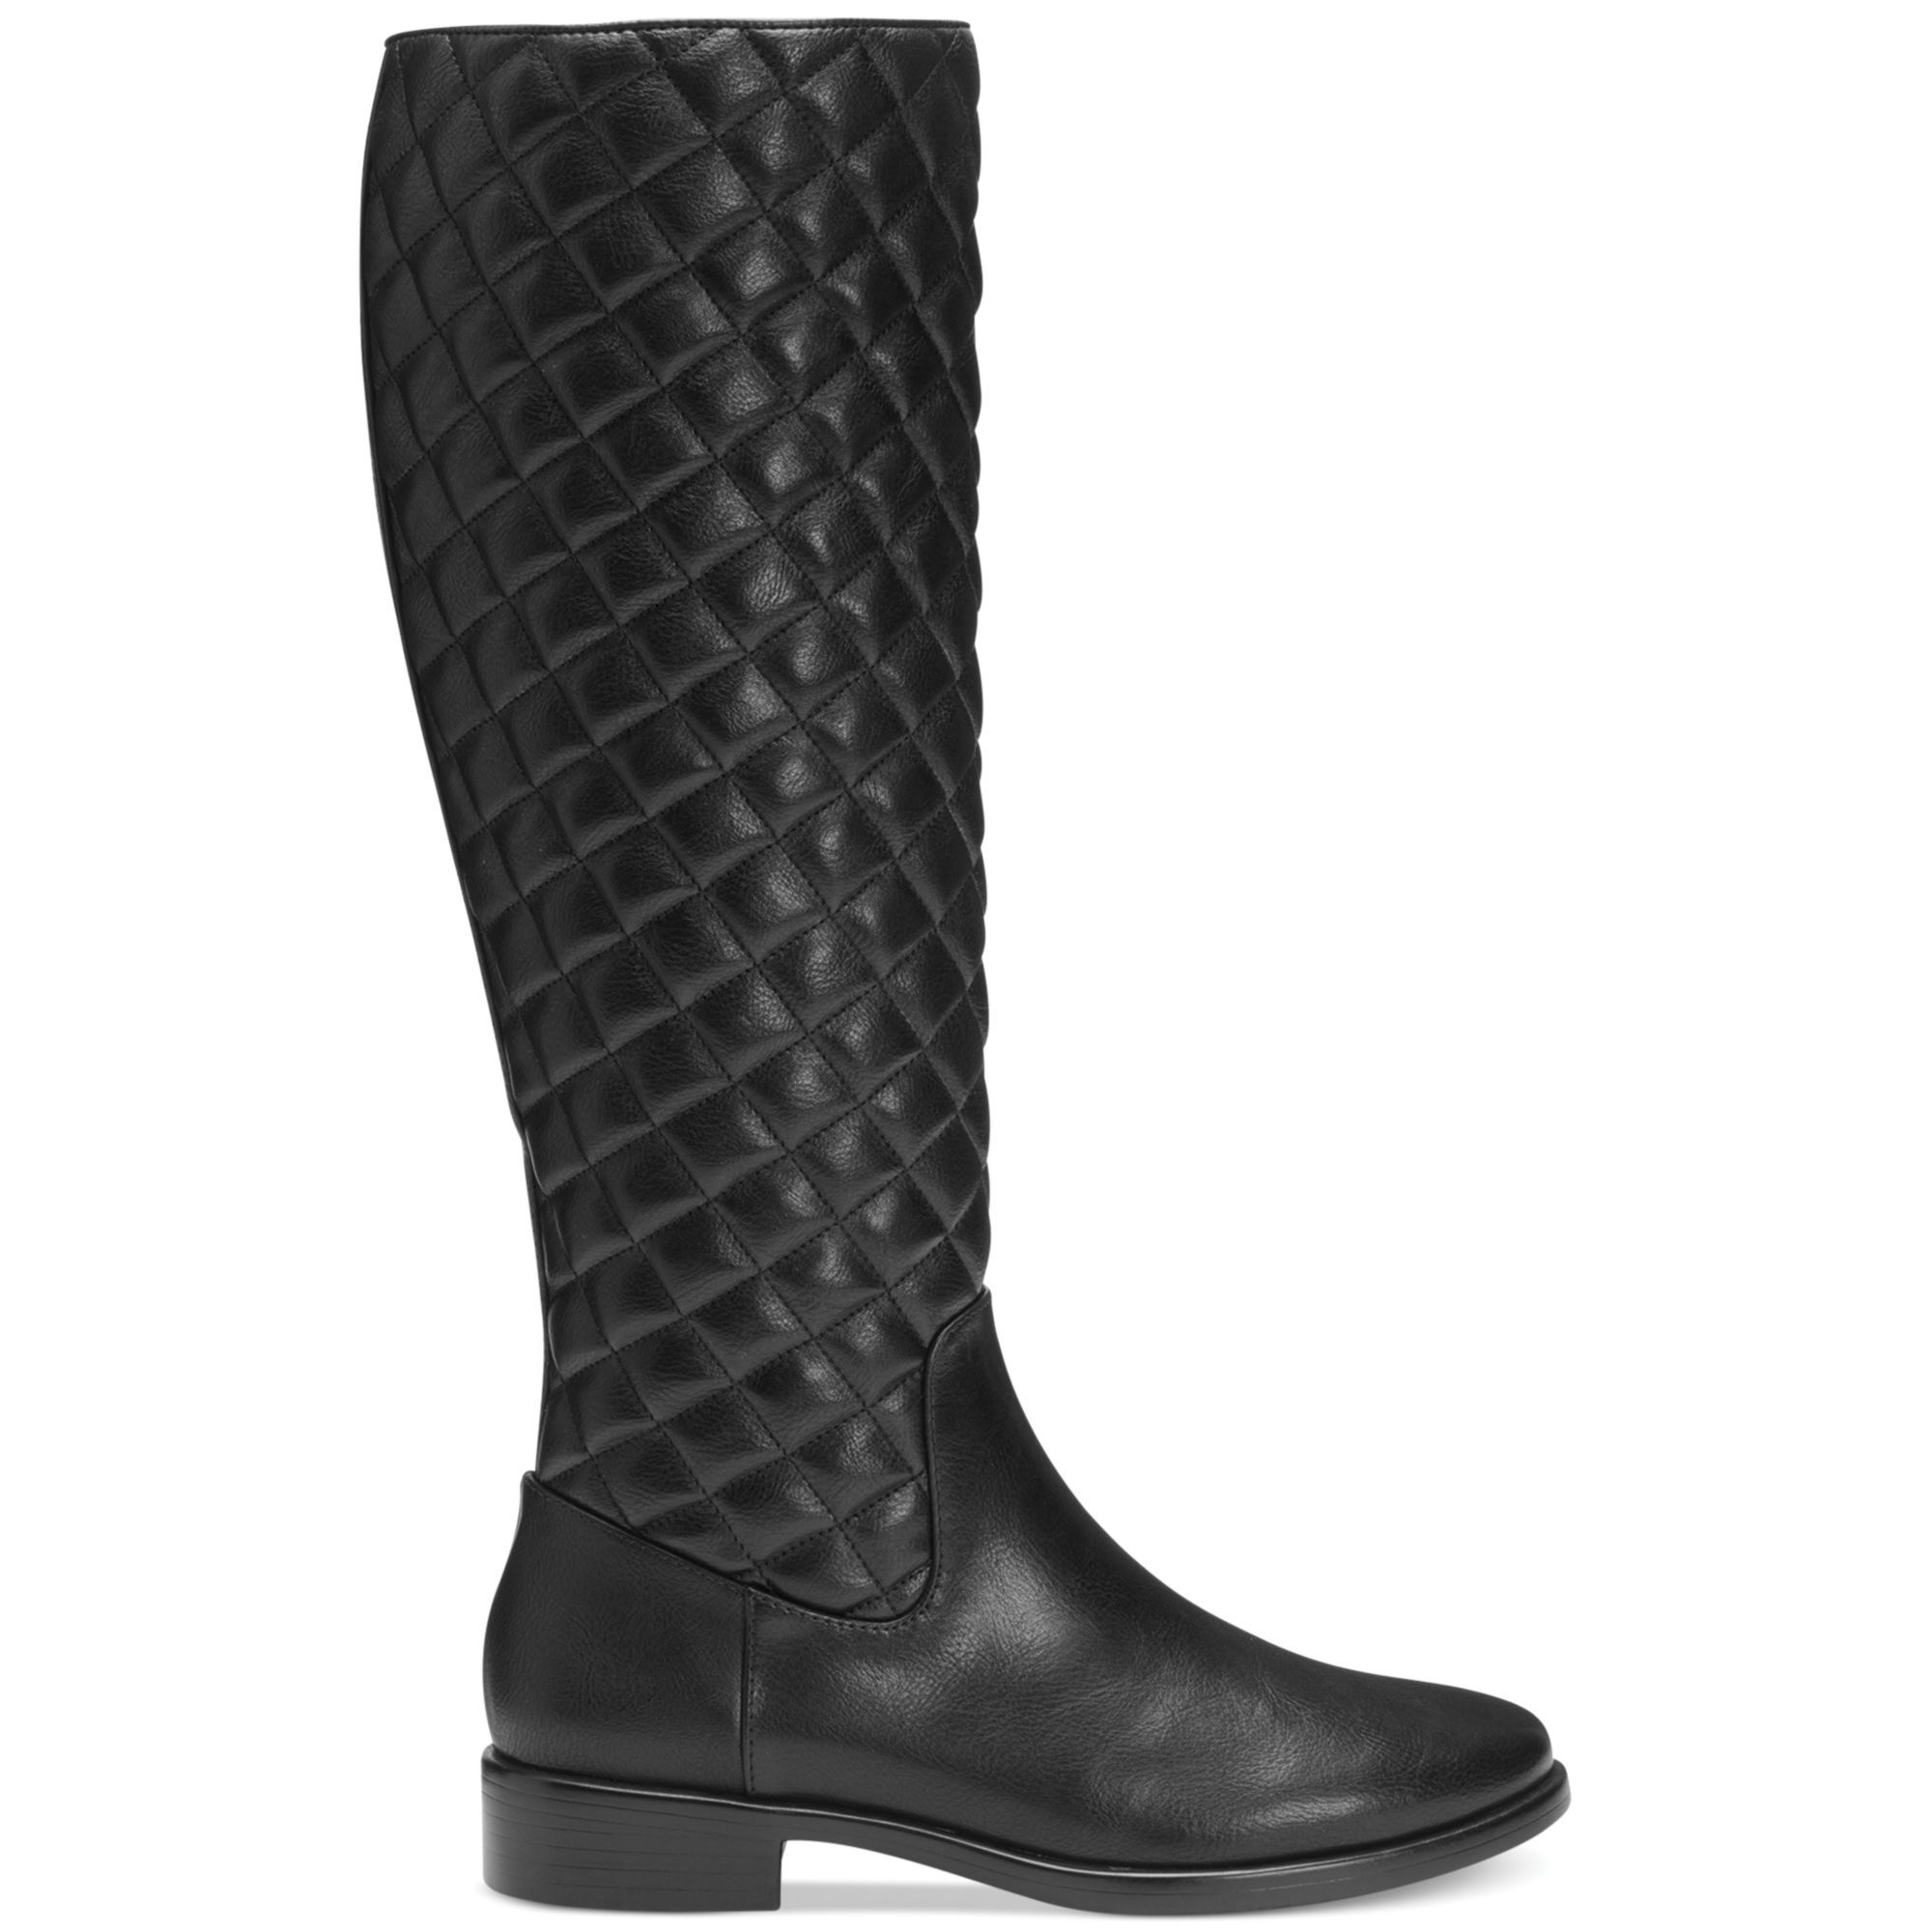 Aerosoles Establish Tall Boots in Black Black Quilted  Lyst